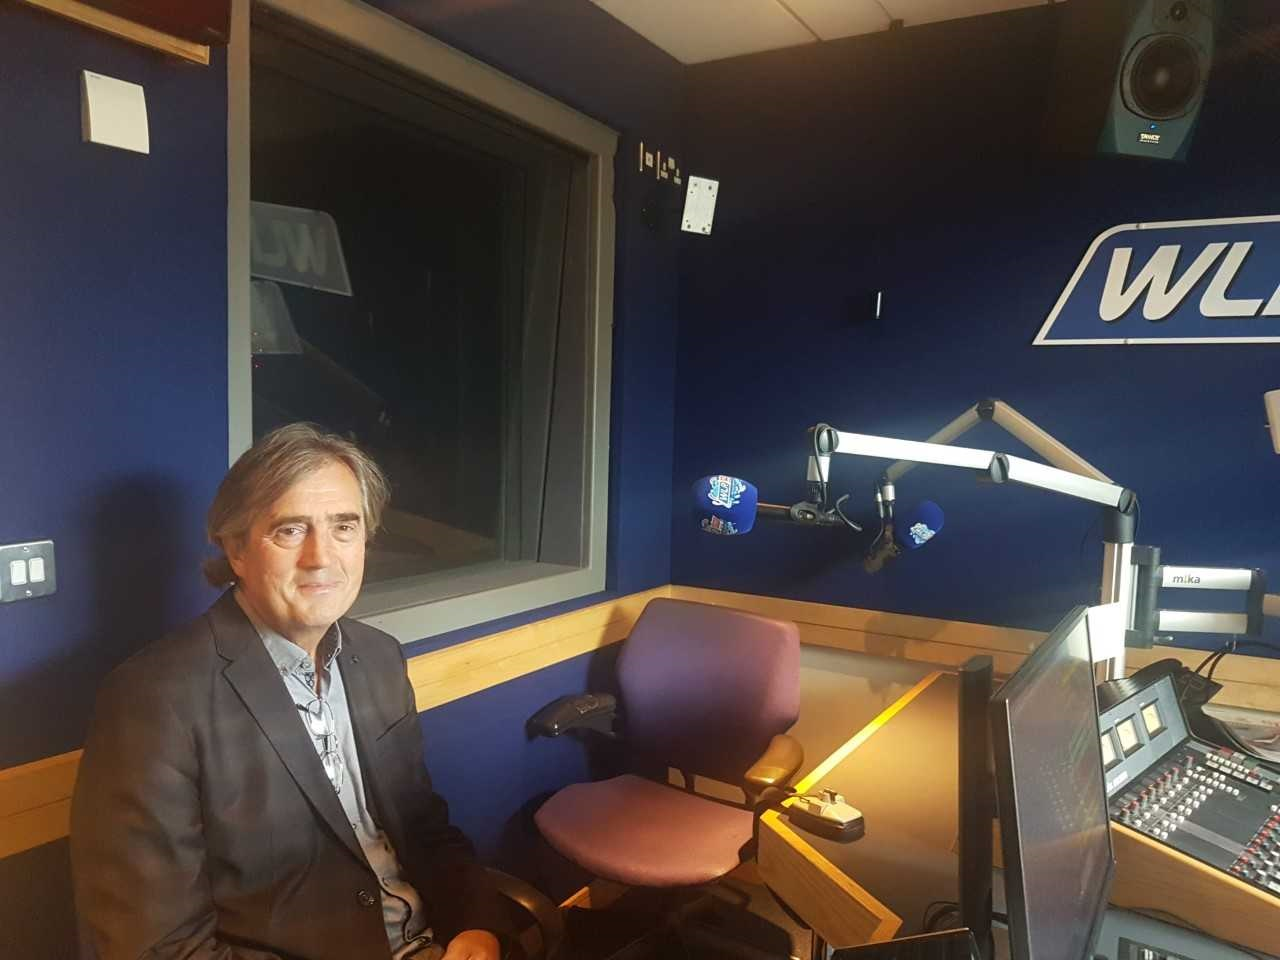 Listen back: Award winning author and Laureate for Irish Fiction Sebastian Barry joined Mary in studio